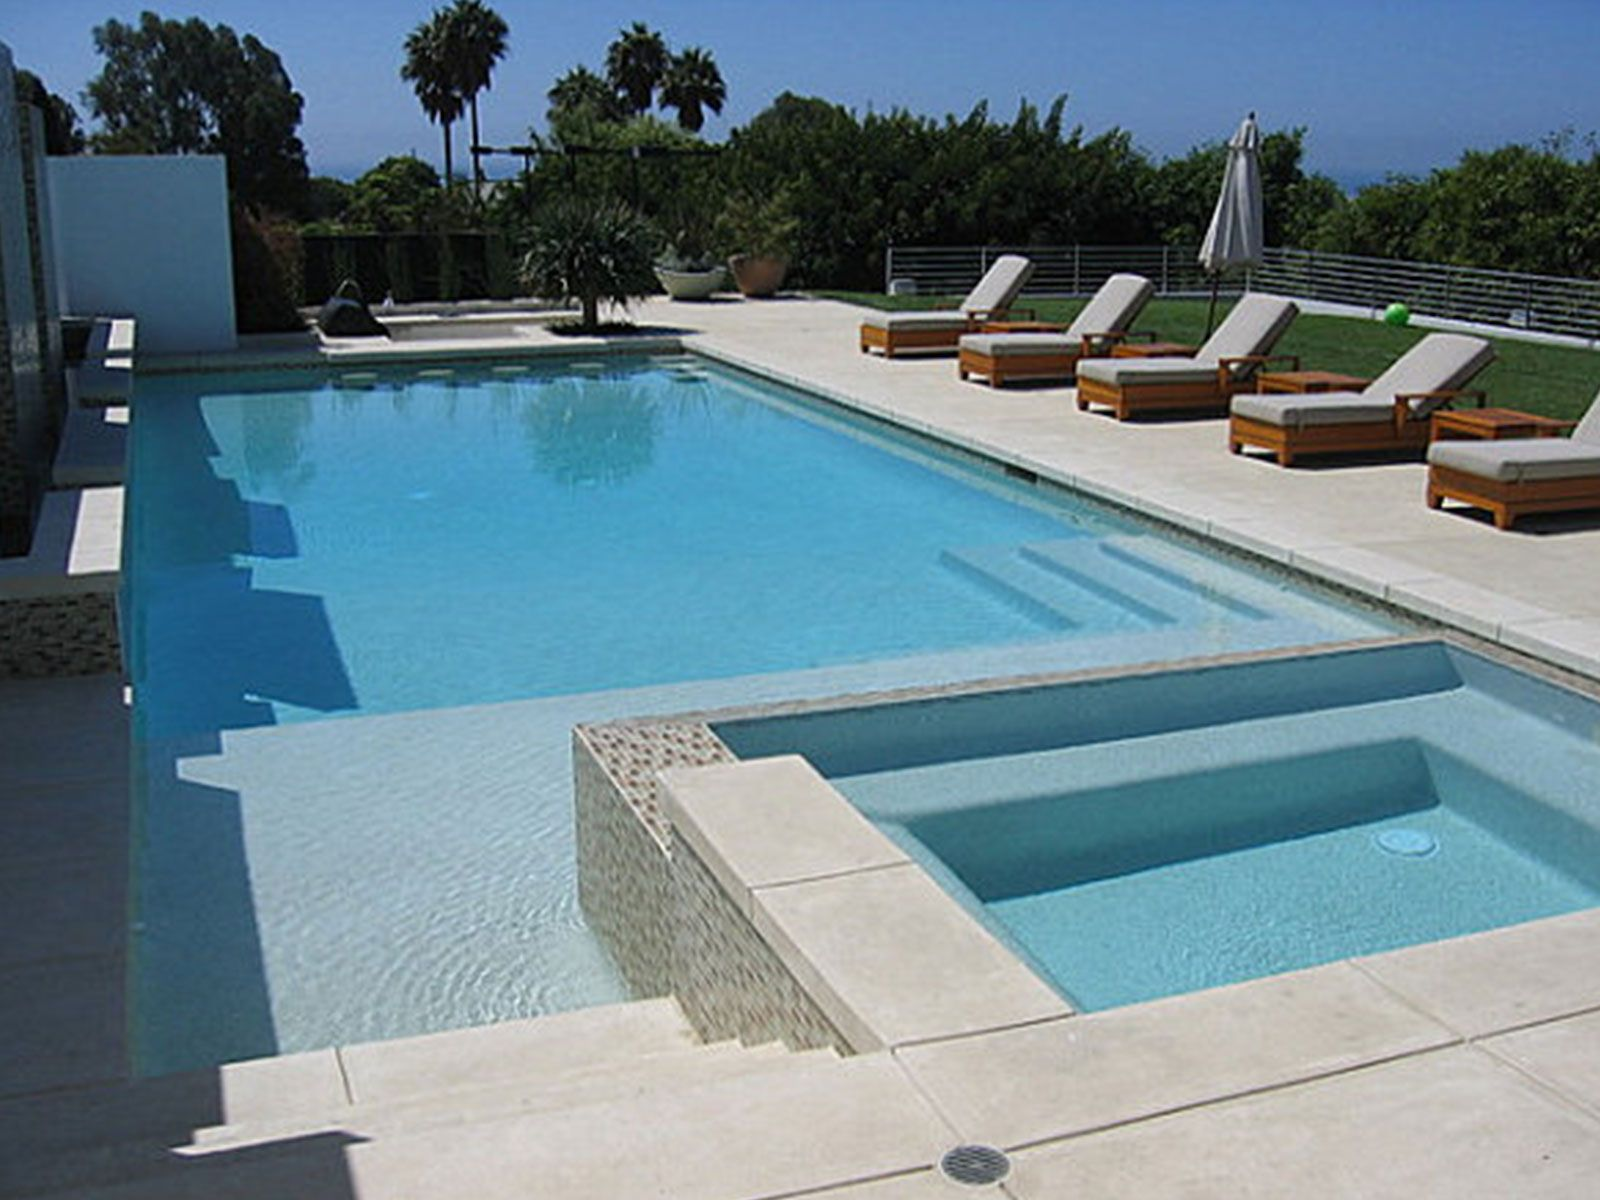 Simple swimming pool design image modern creative swimming for Swimming pool landscape design